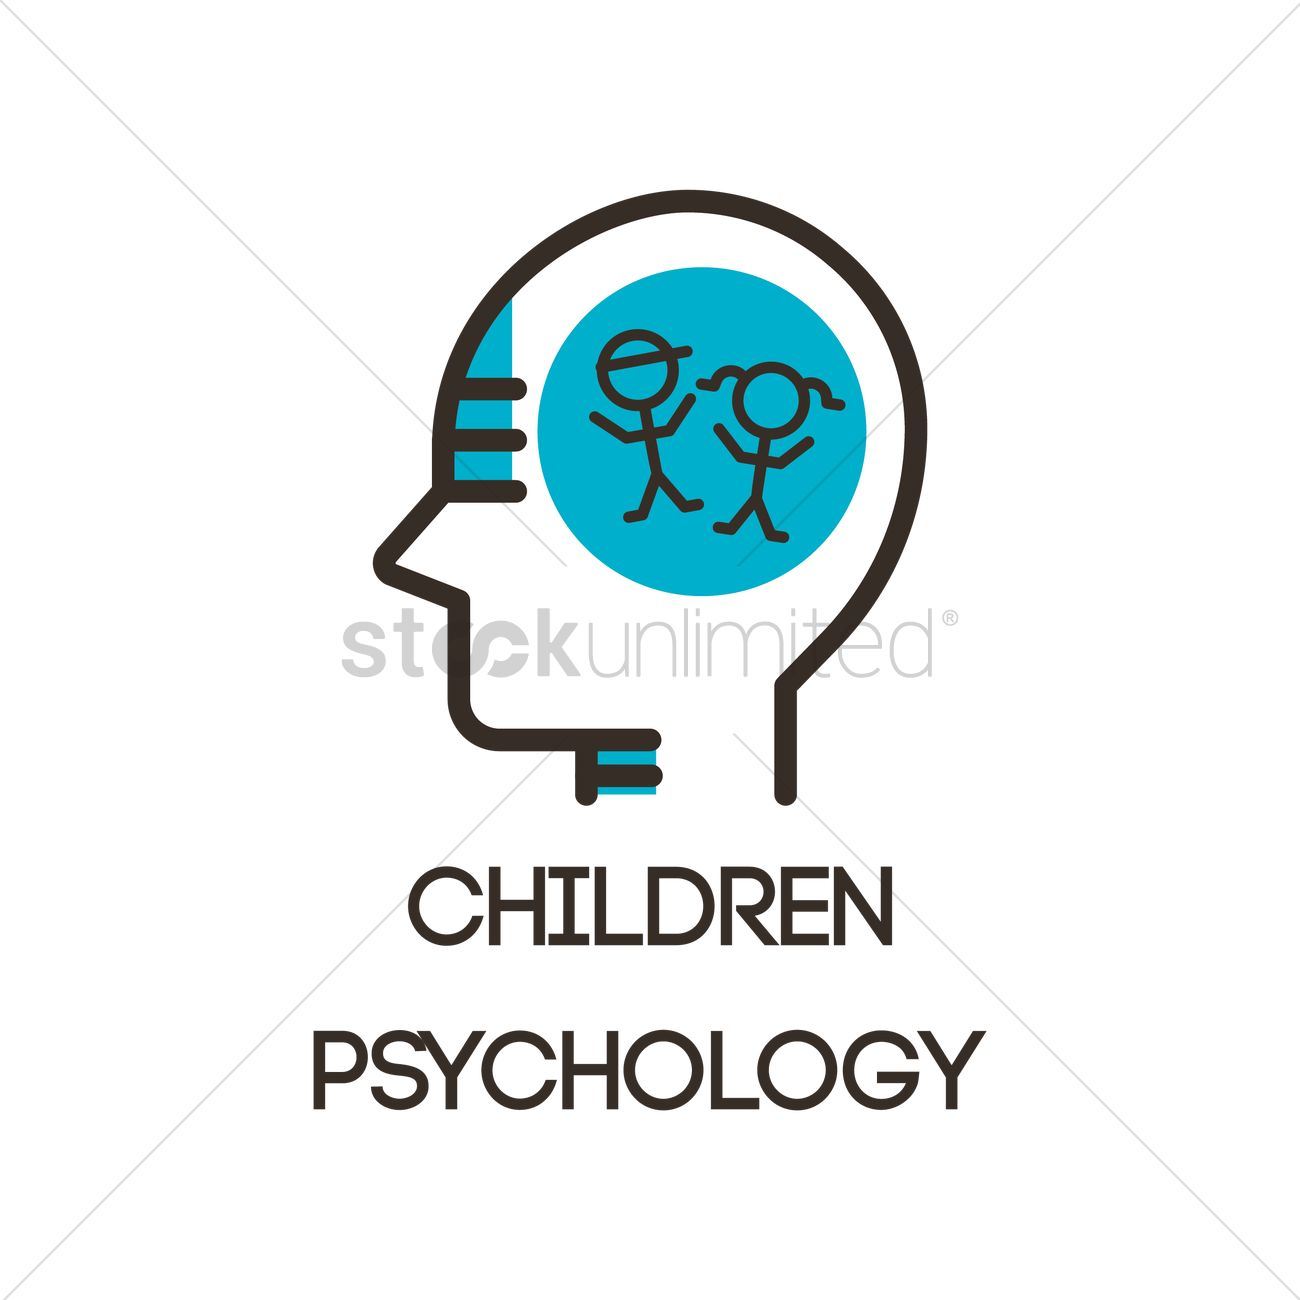 Children Psychology Icon Vector Image 2023225 Stockunlimited